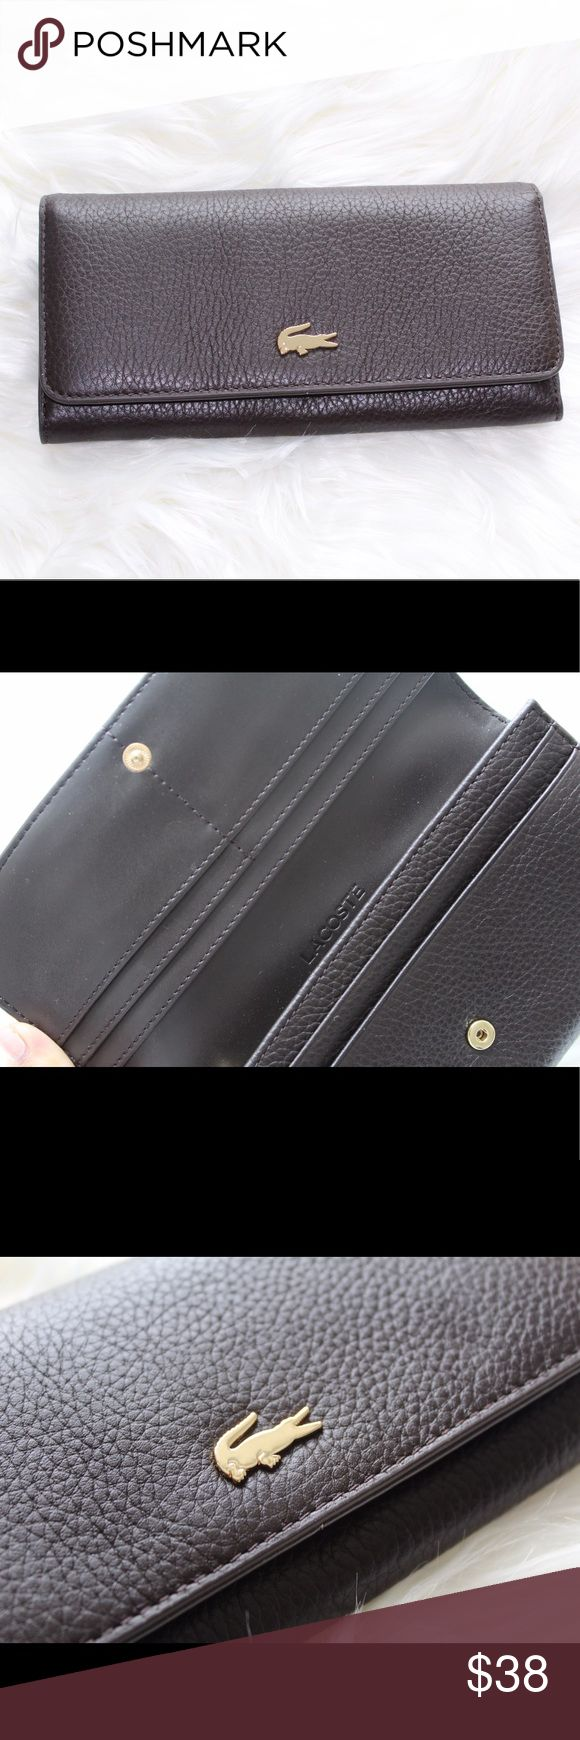 Lacoste Women's Brown Genuine Leather Wallet- OS Lacoste Women's Brown Geniune Leather Wallet with gold croc- Brand new! Never used! Great for gifting. 100% leather Lacoste Bags Wallets